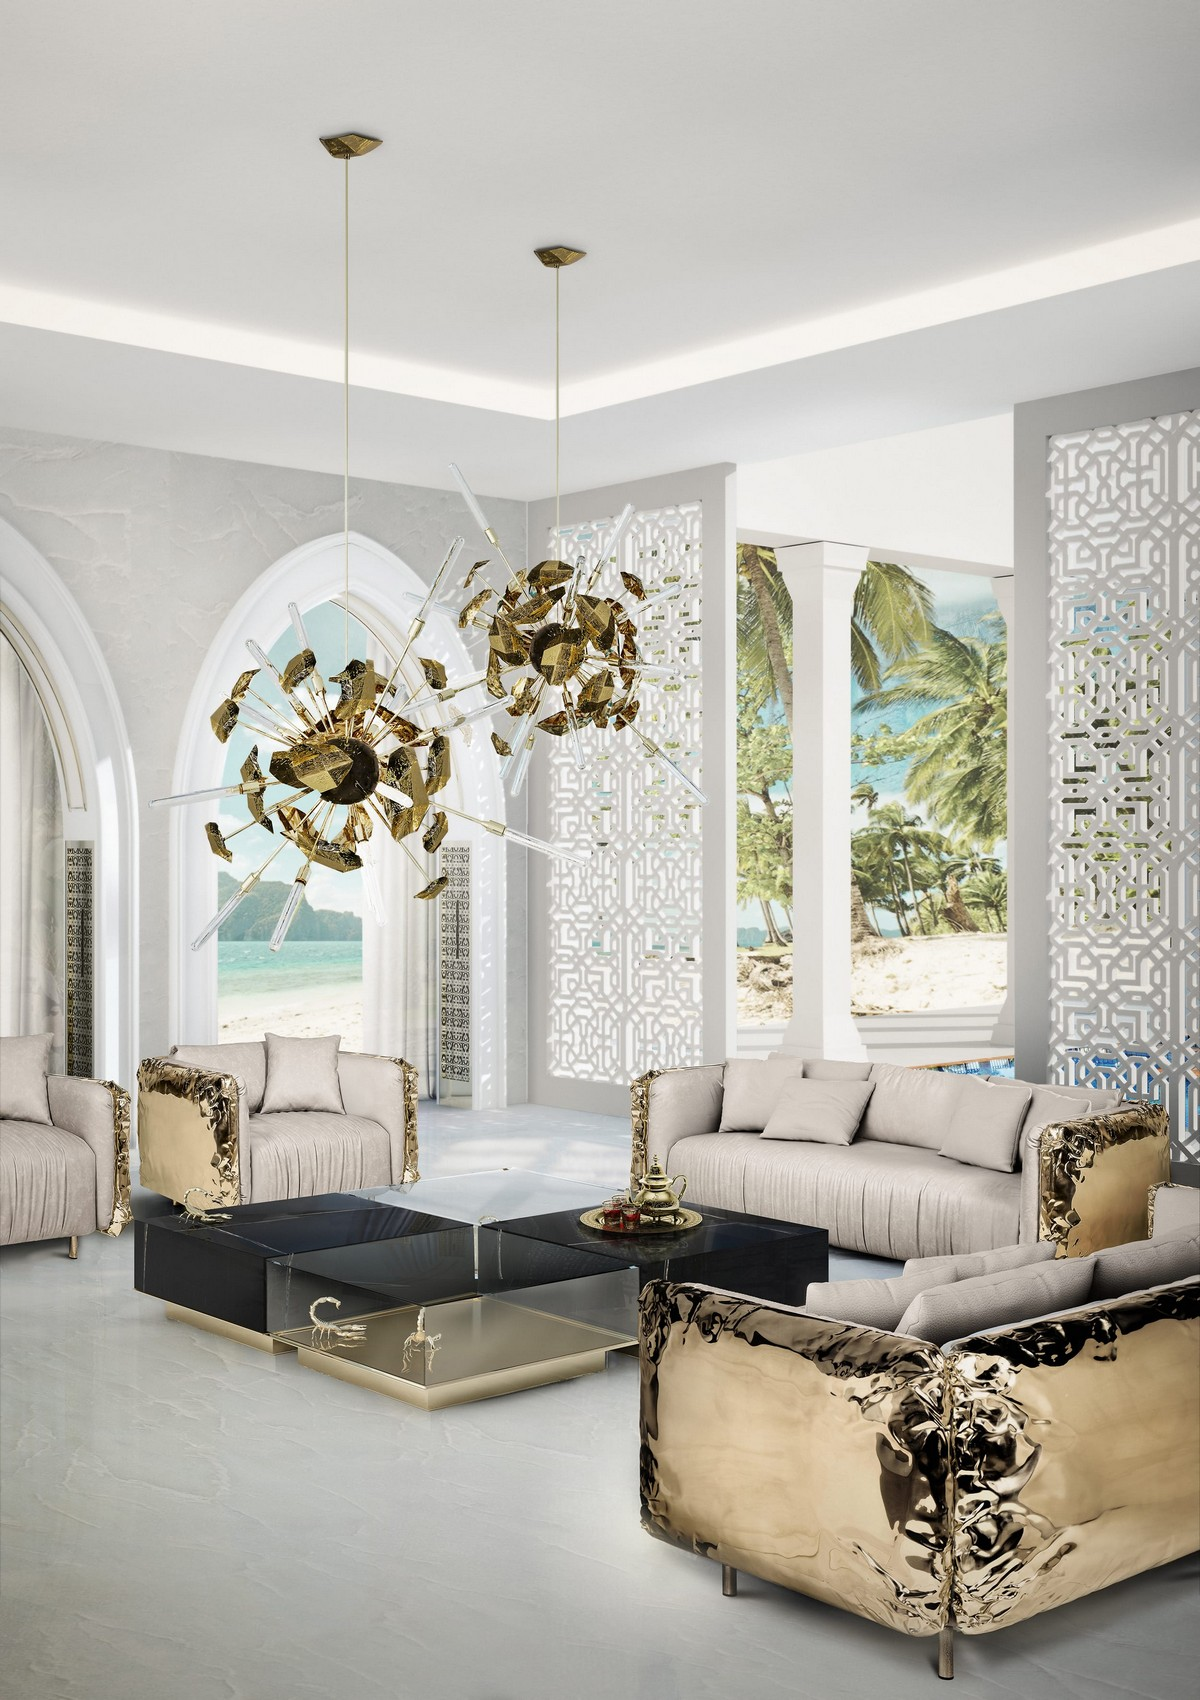 5 Luxury Living Room Inspirations You'll Love living room inspirations 5 Luxury Living Room Inspirations You'll Love ambience arabe